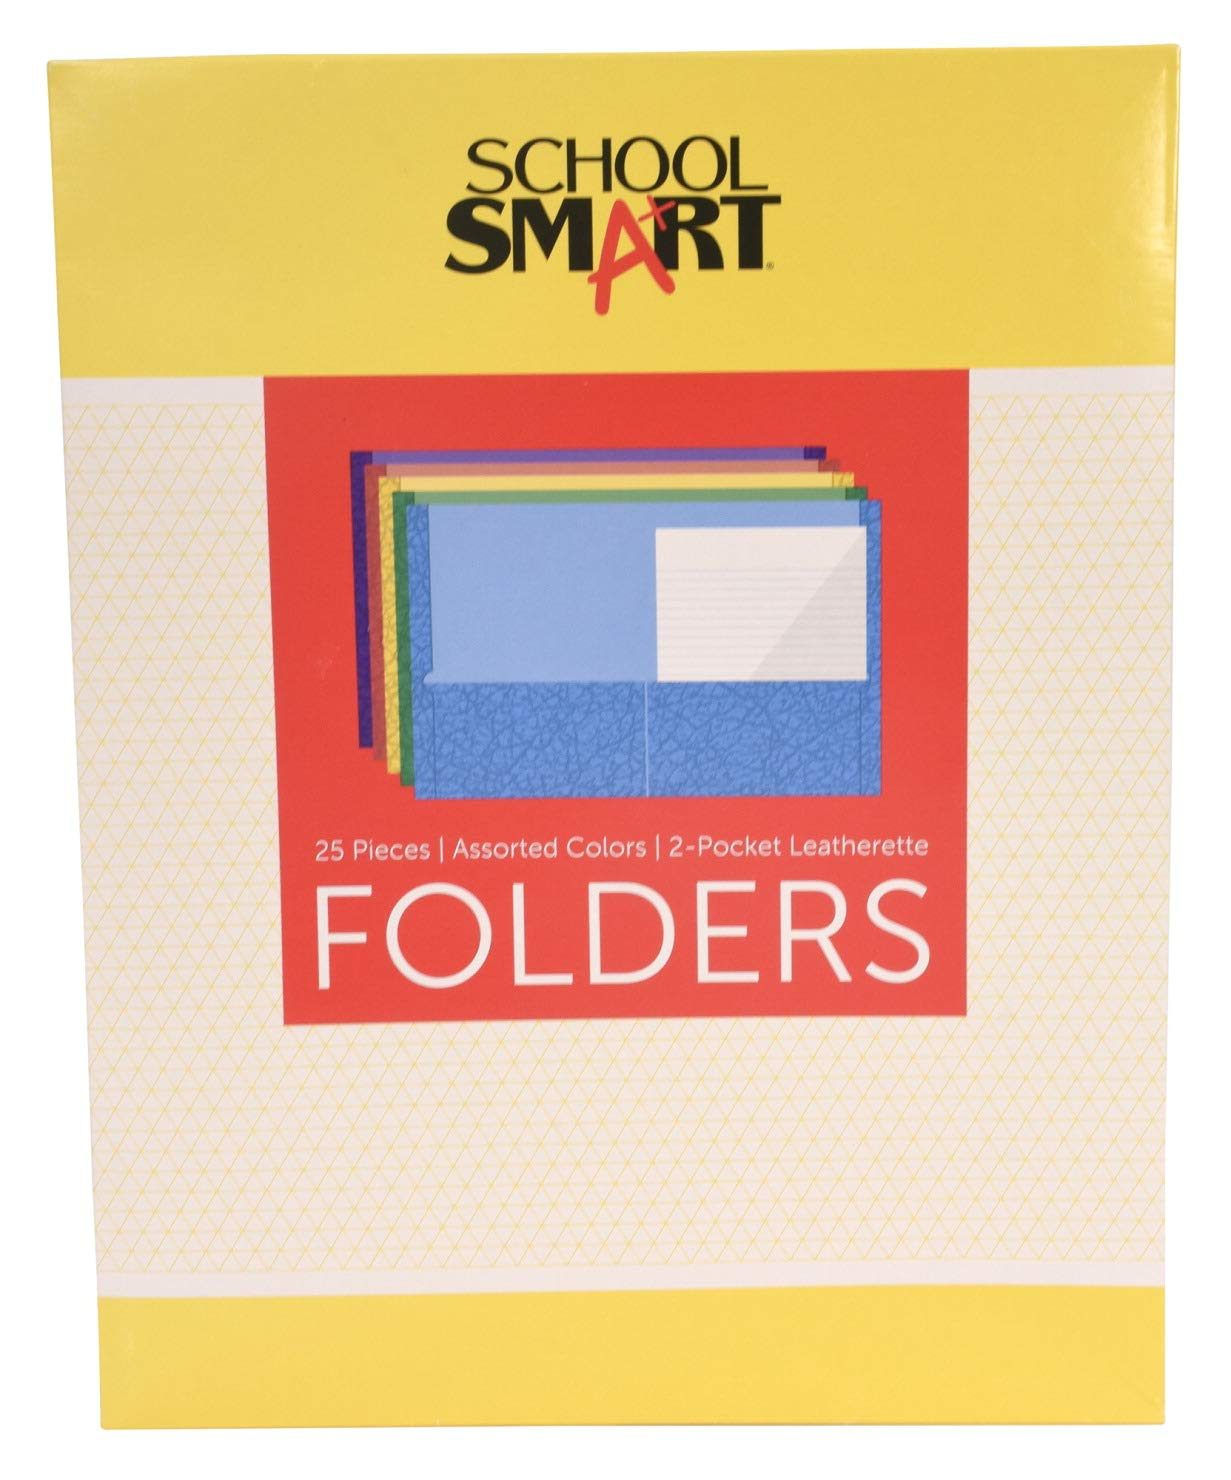 School Smart Extra Large 2-Pocket Folders, 9 x 12 Inches, Assorted Colors, Pack of 25 by School Smart